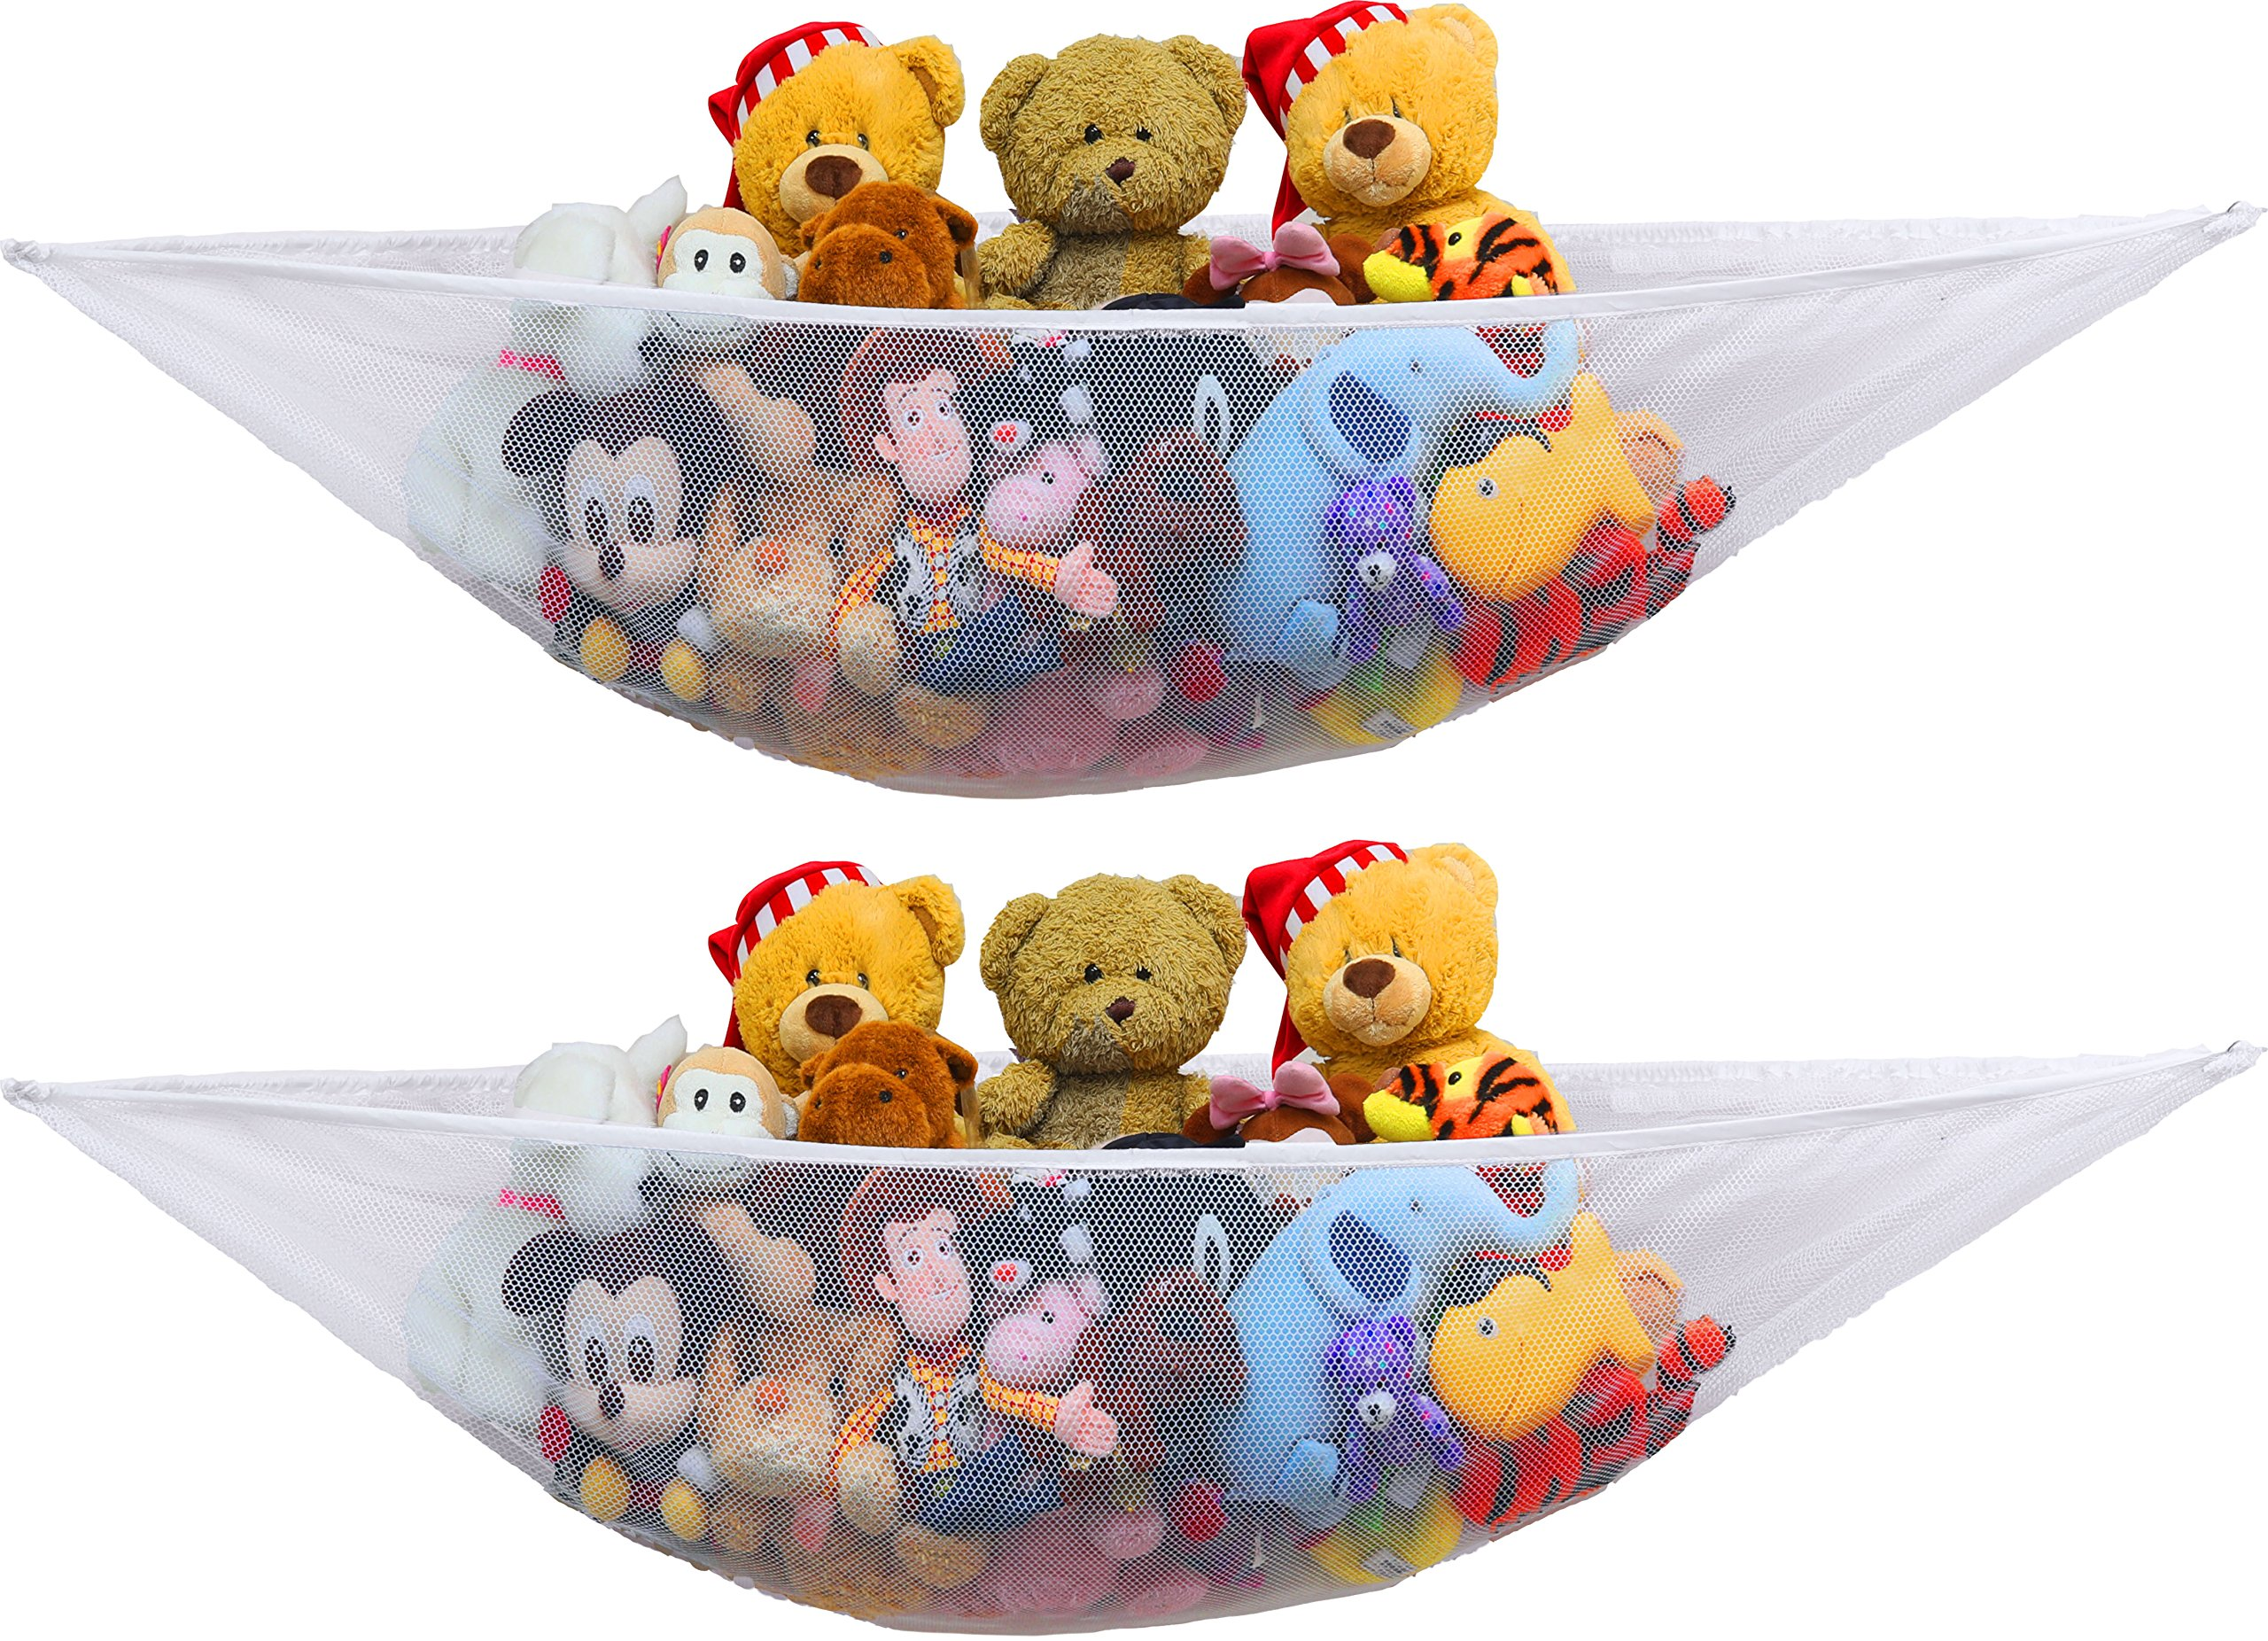 2 PK - Simplehouseware Stuffed Animal Jumbo Toy Storage Hammock by Simple Houseware